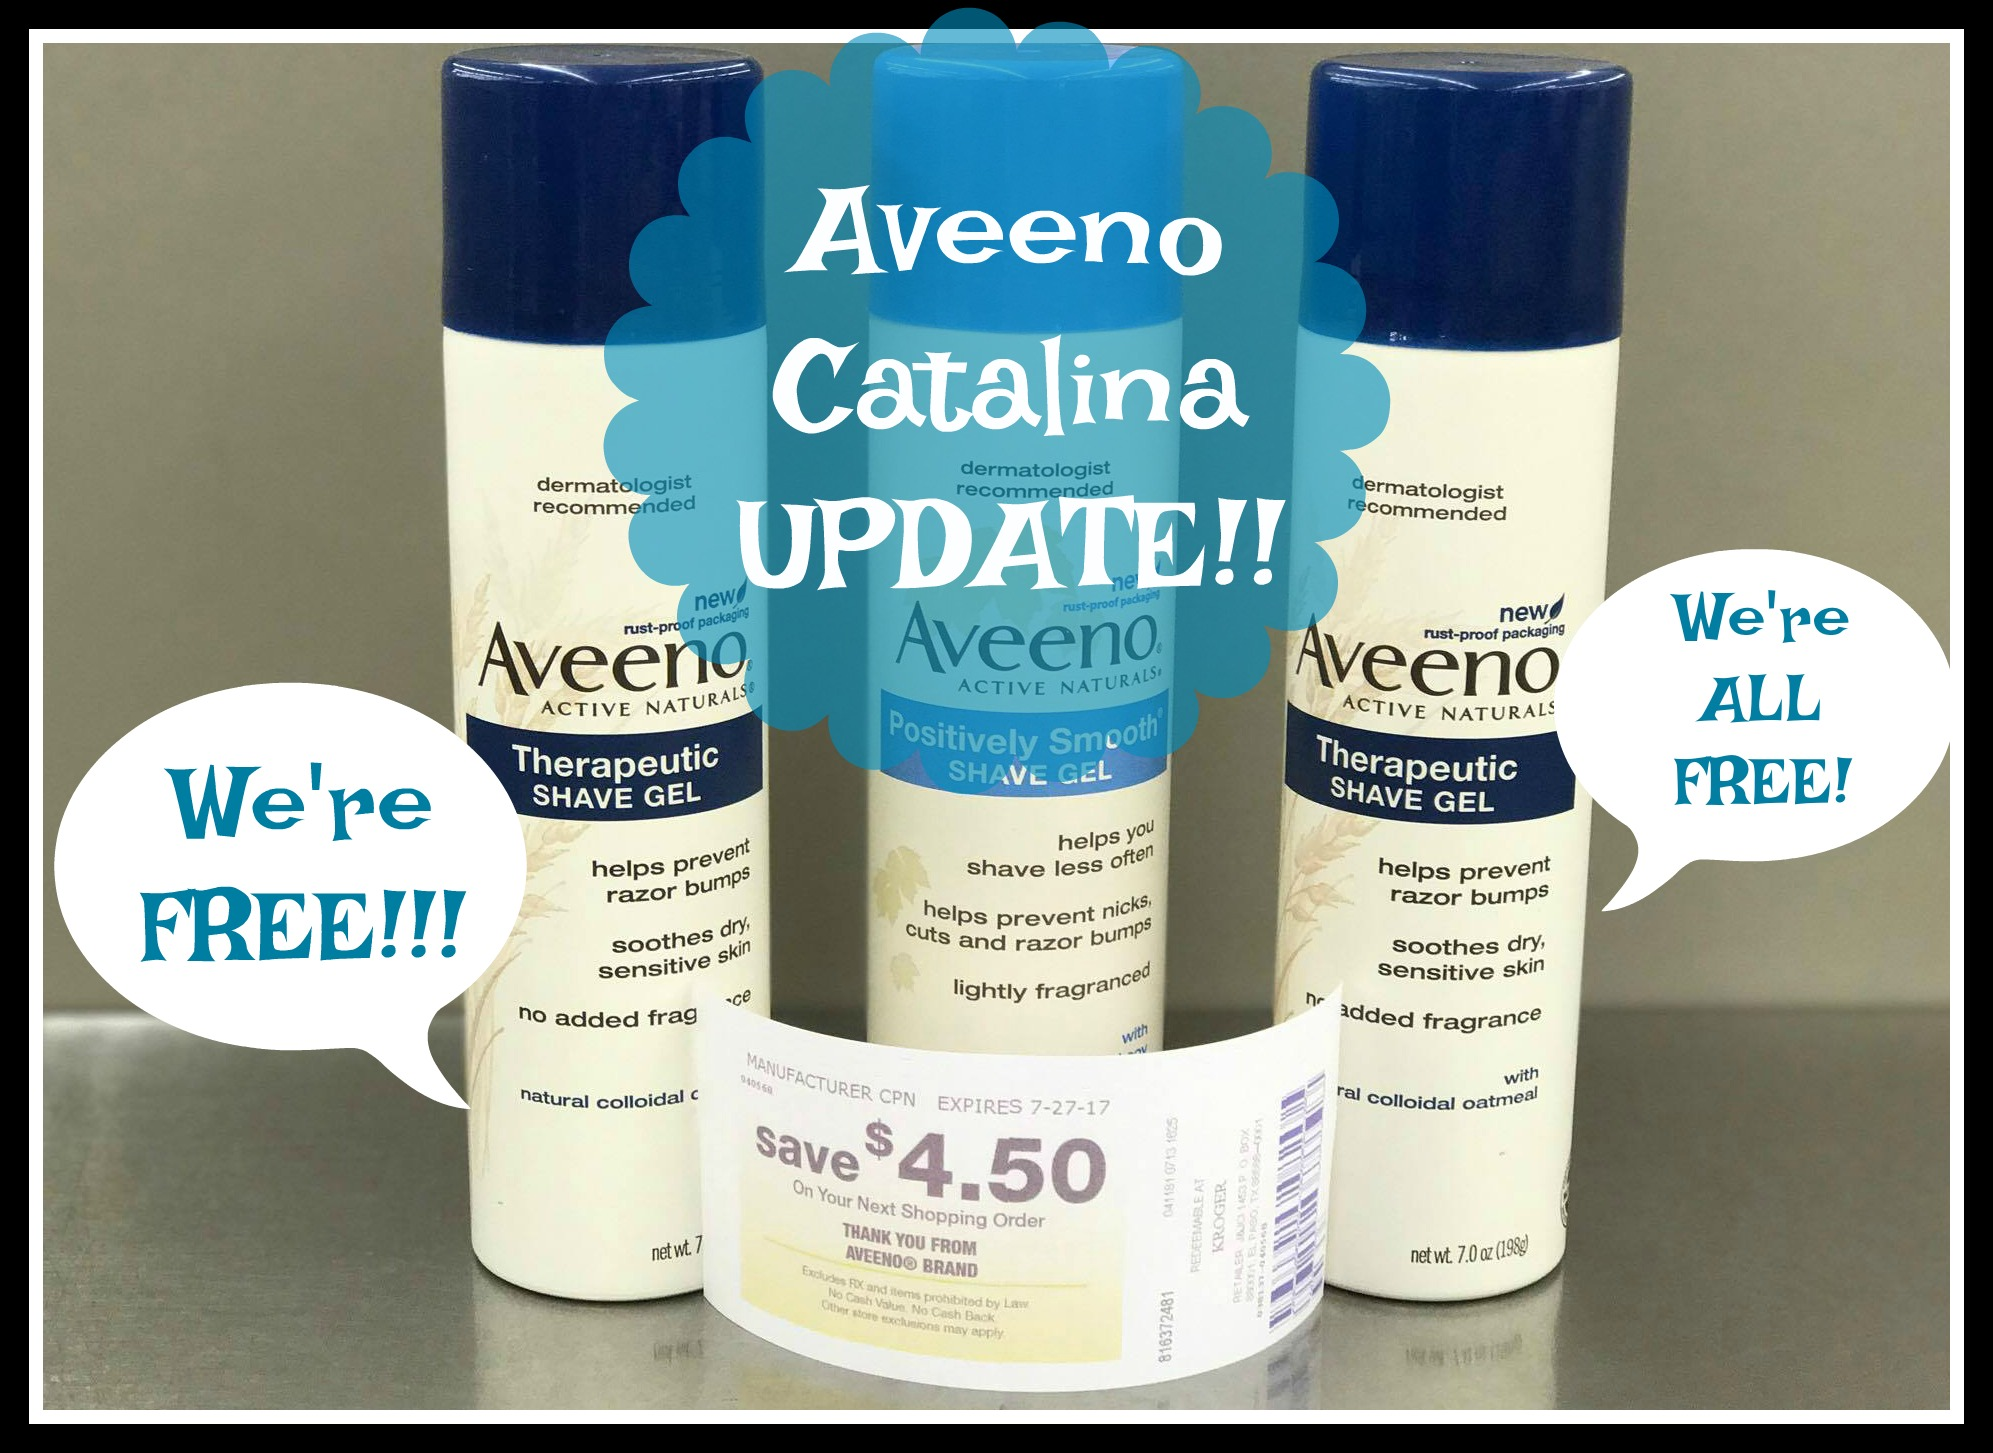 *Aveeno Catalina Update* Get THREE Shave Gels for FREE at Kroger!! - Kroger Krazy